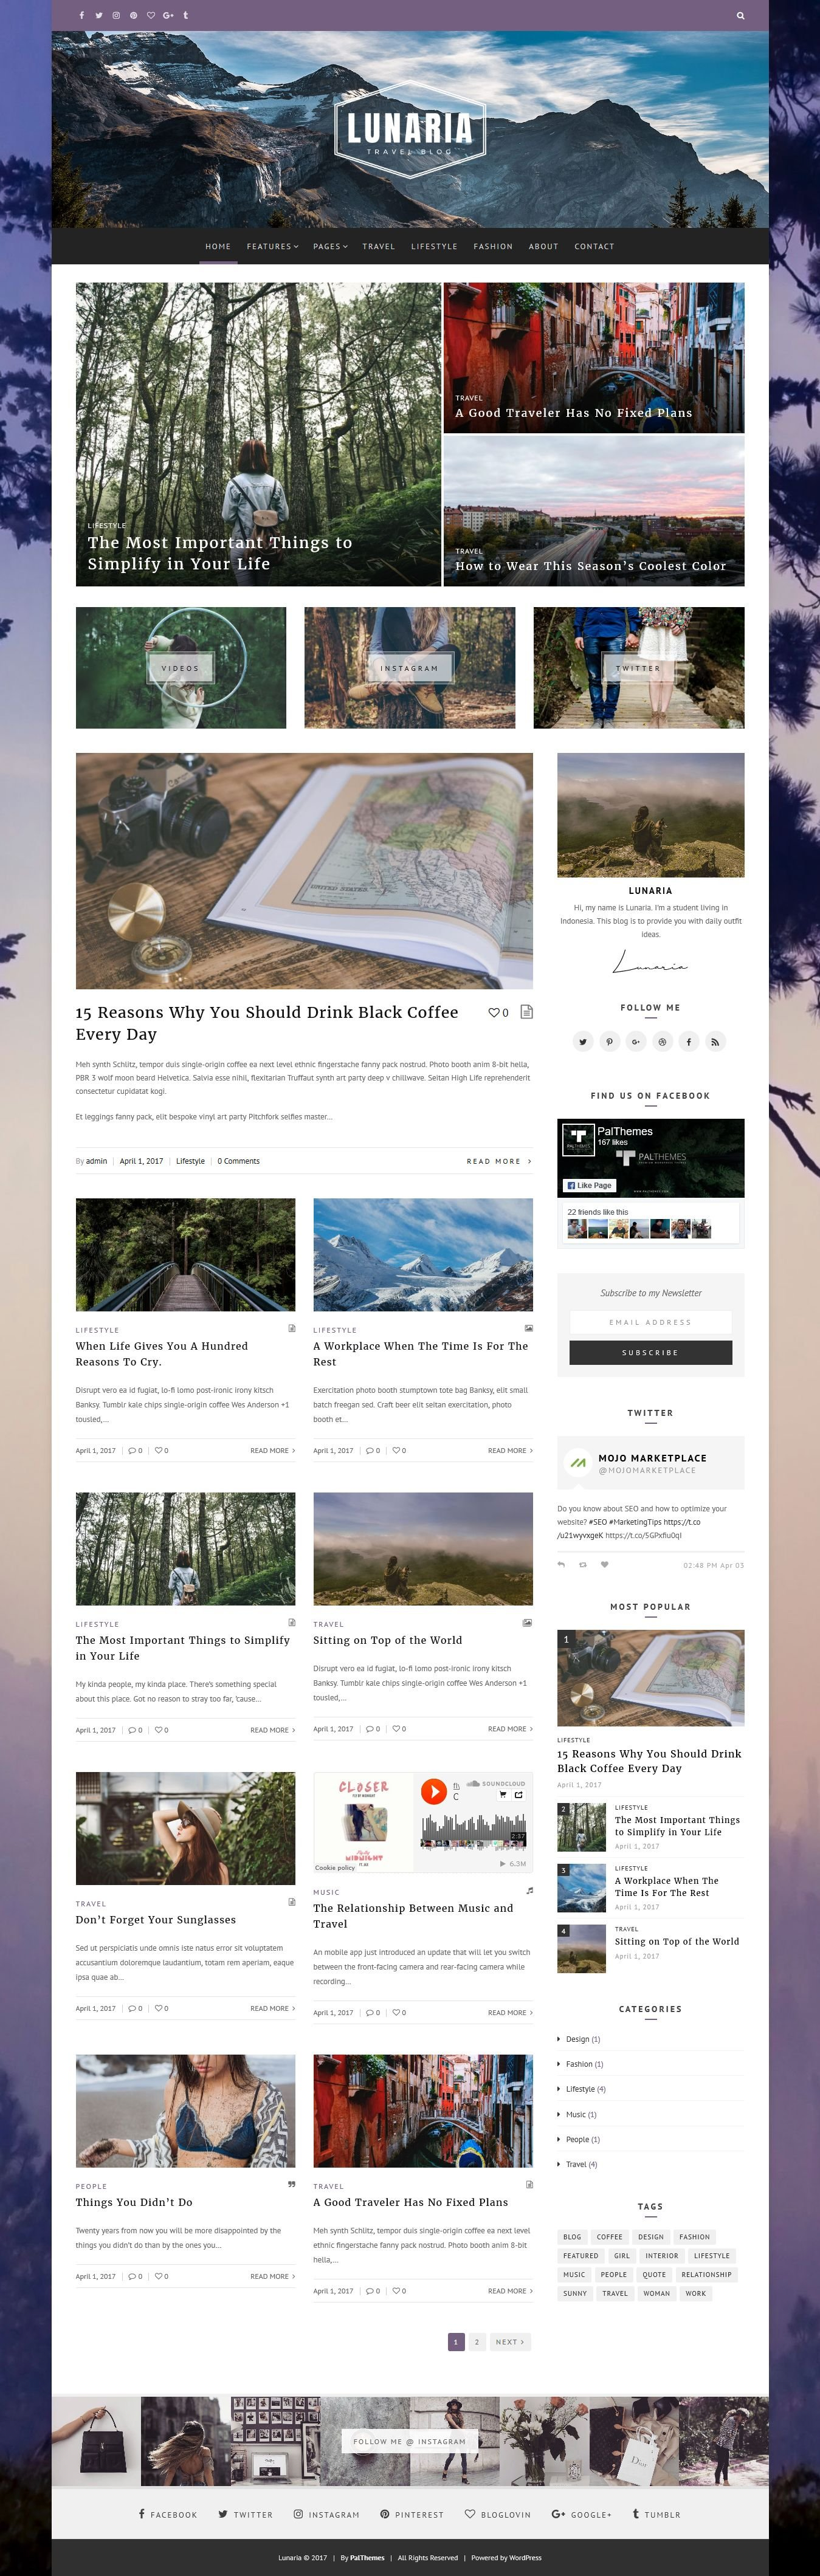 Lunaria - Clean Personal WordPress Theme Screenshot 9